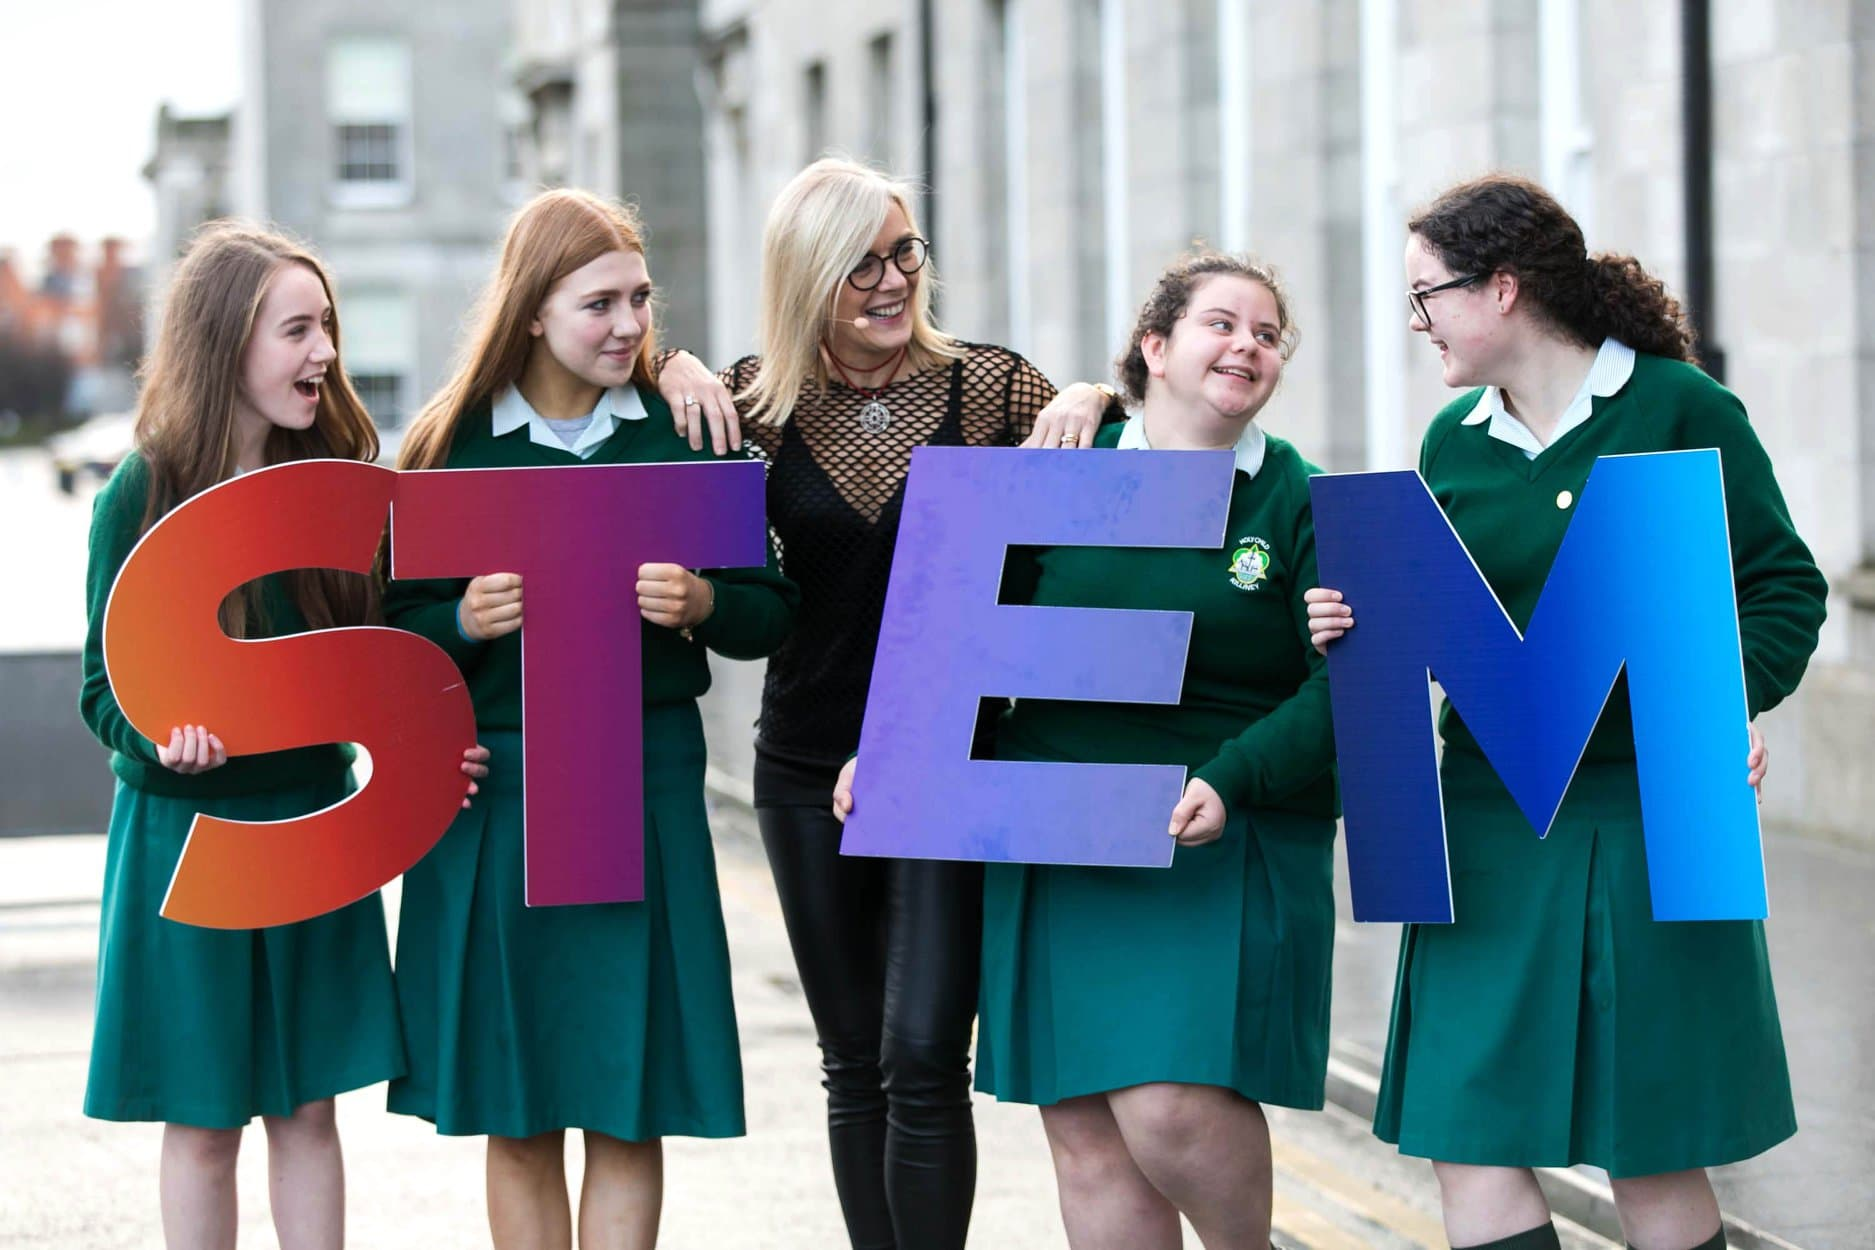 Cork Dates Sold Out for I WISH STEM TY Conference